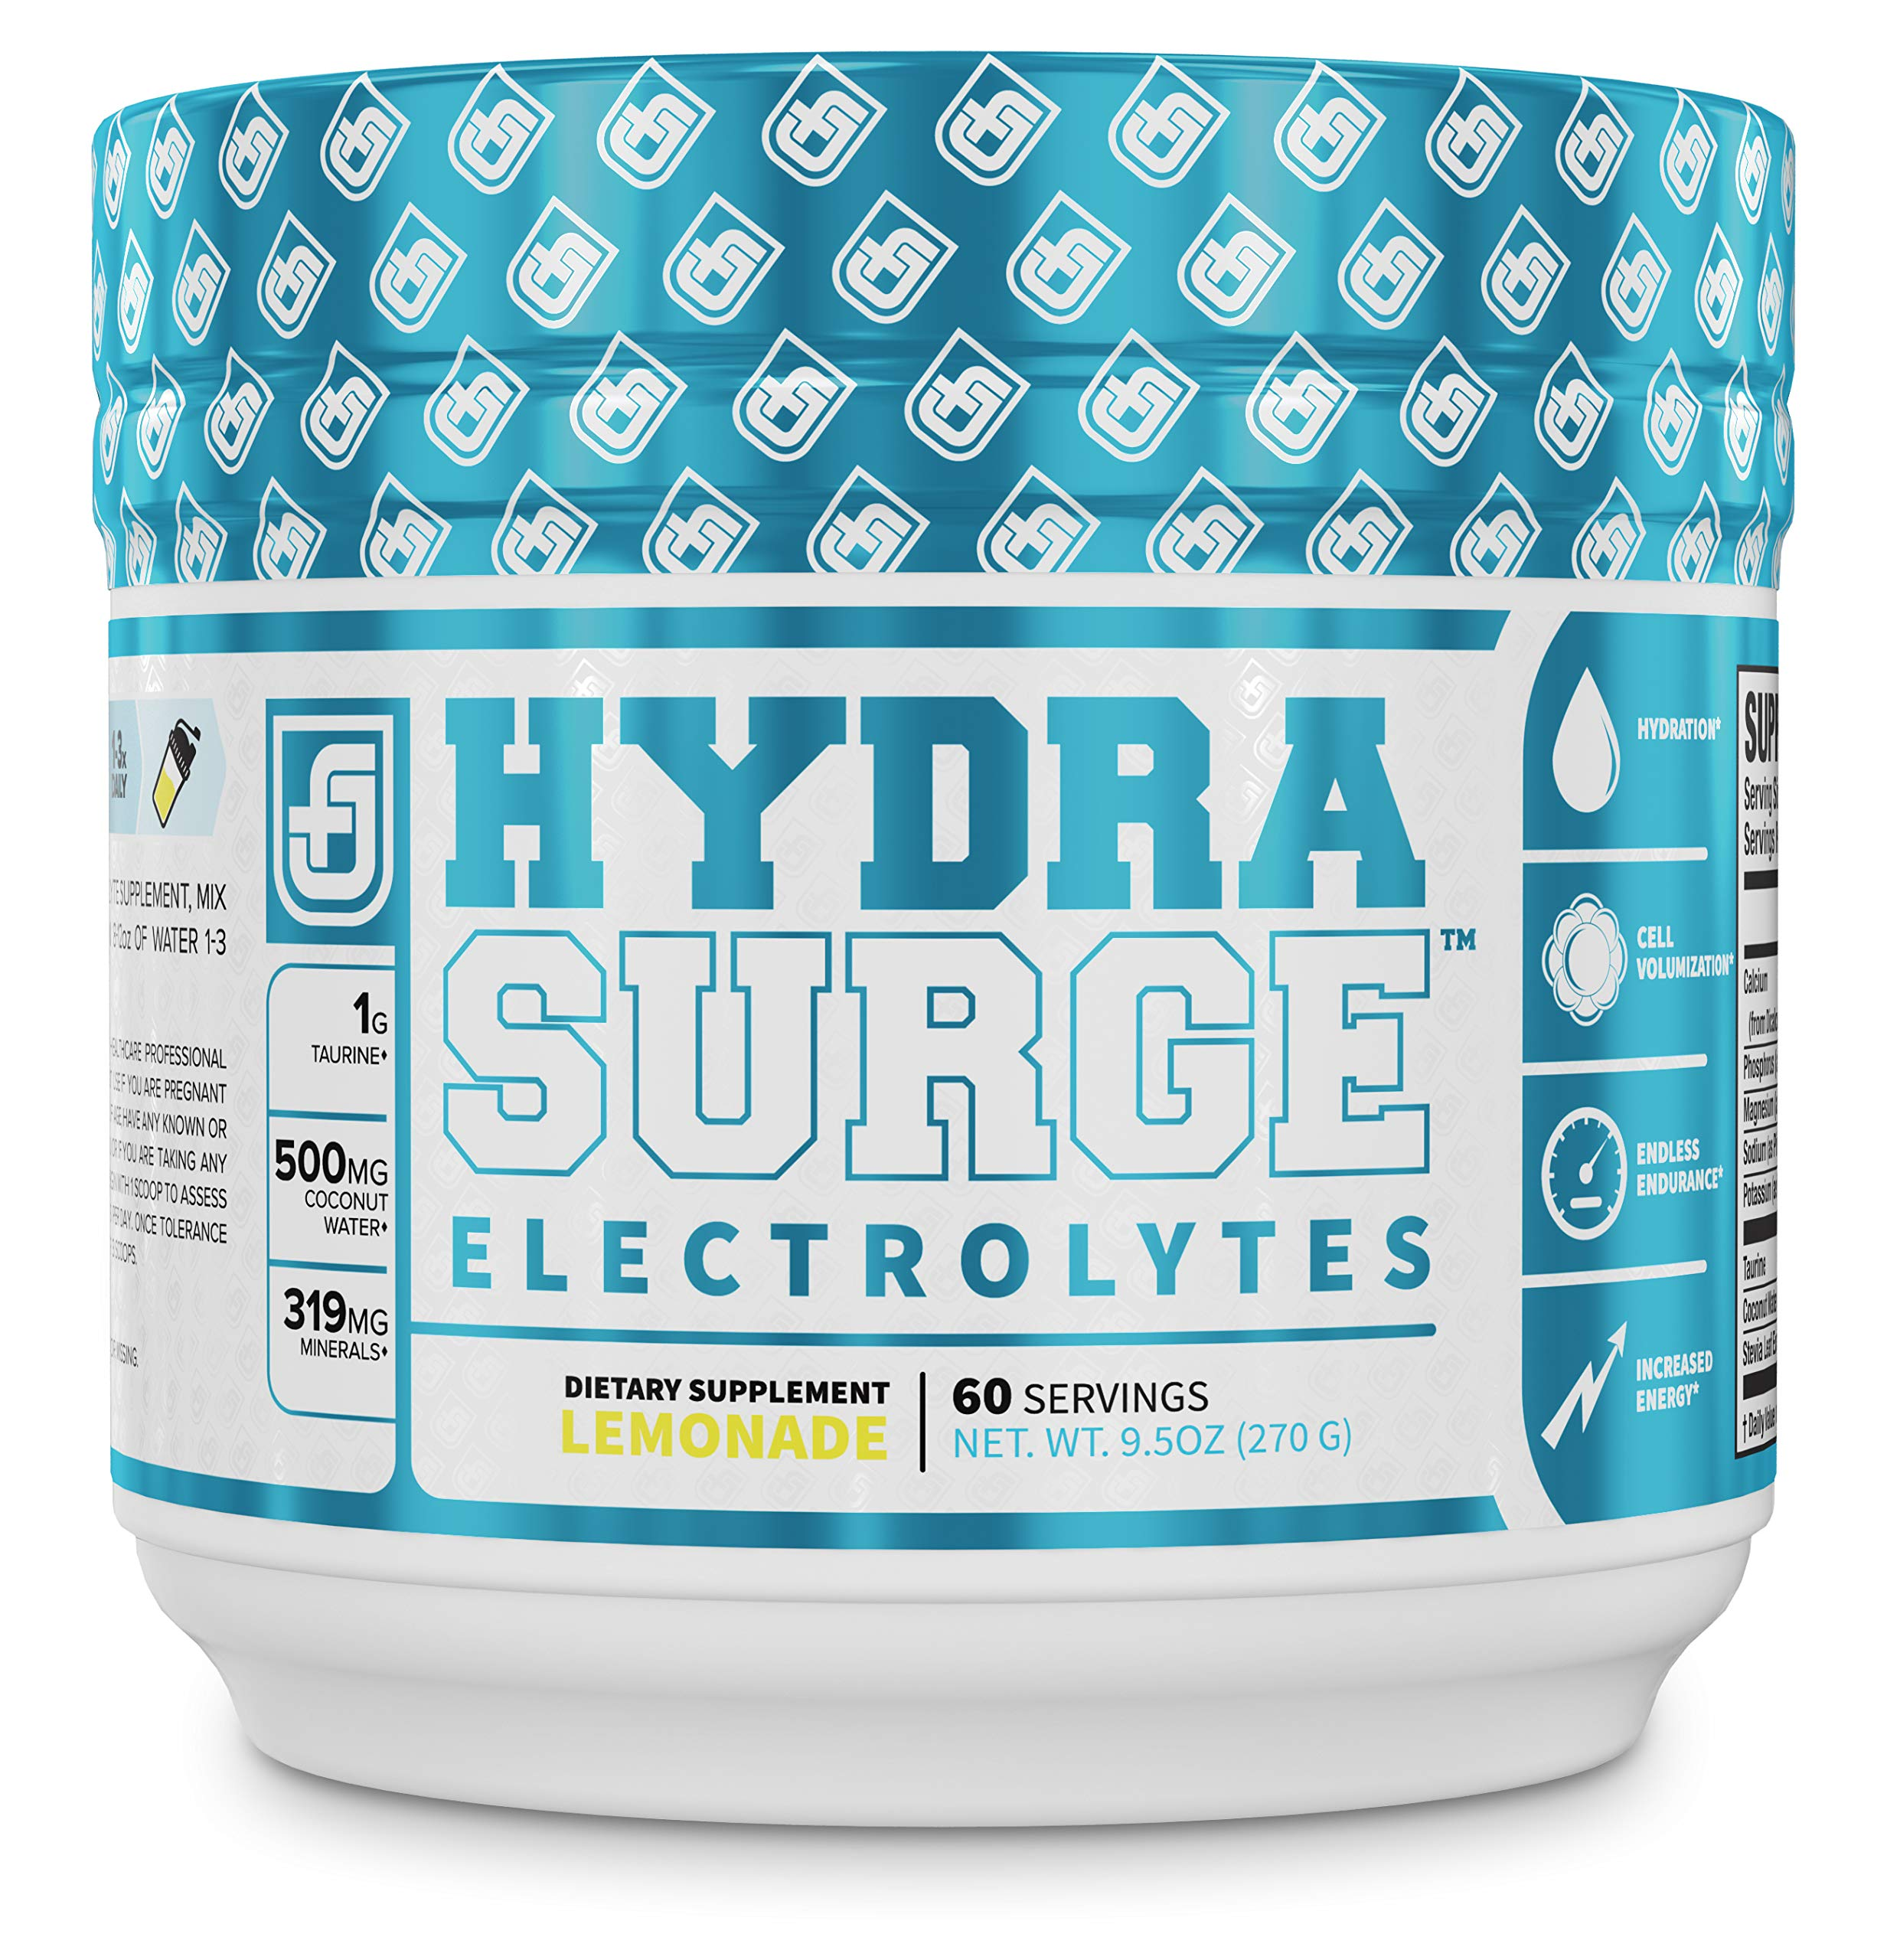 HYDRASURGE Electrolyte Powder - Hydration Supplement with Key Minerals, Himalayan Sea Salt, Coconut Water, More - Keto Friendly, Sugar Free & Naturally Sweetened - 60 Servings, Refreshing Lemonade by Jacked Factory